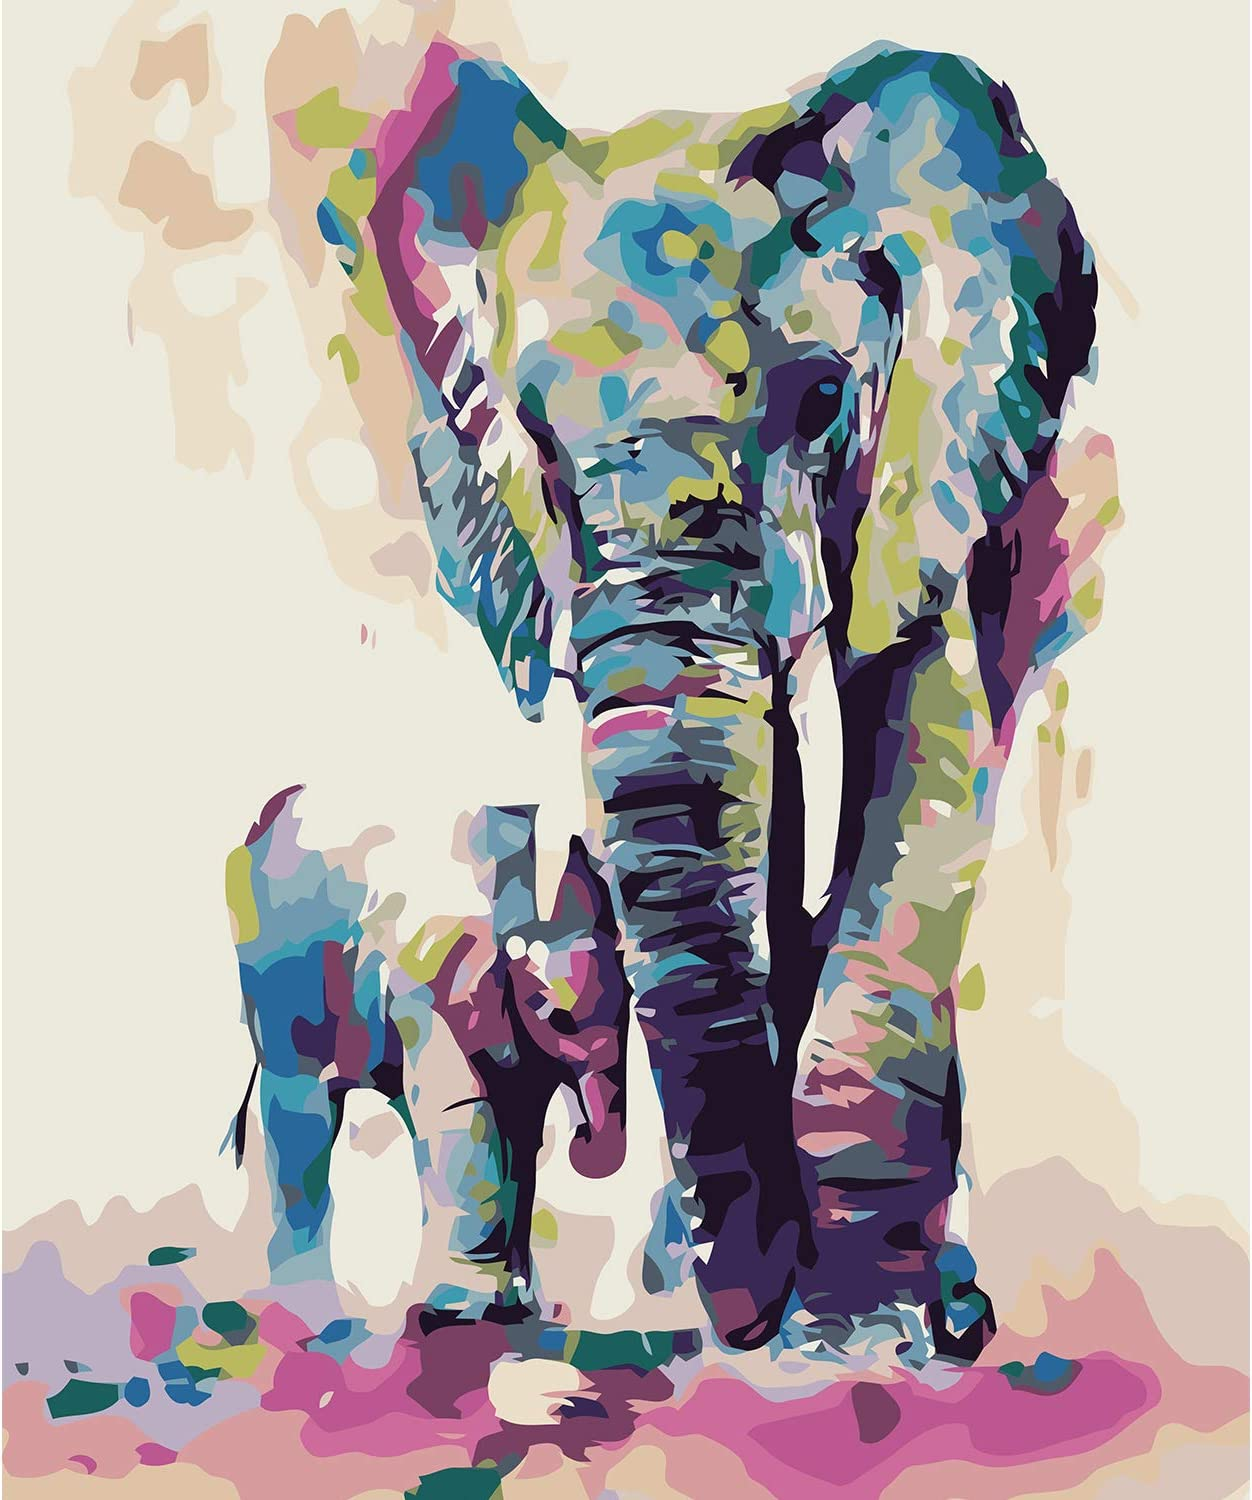 Elephant 16x20 Inches Paint by Numbers Kits for Adults Arfbear DIY Oil Painting